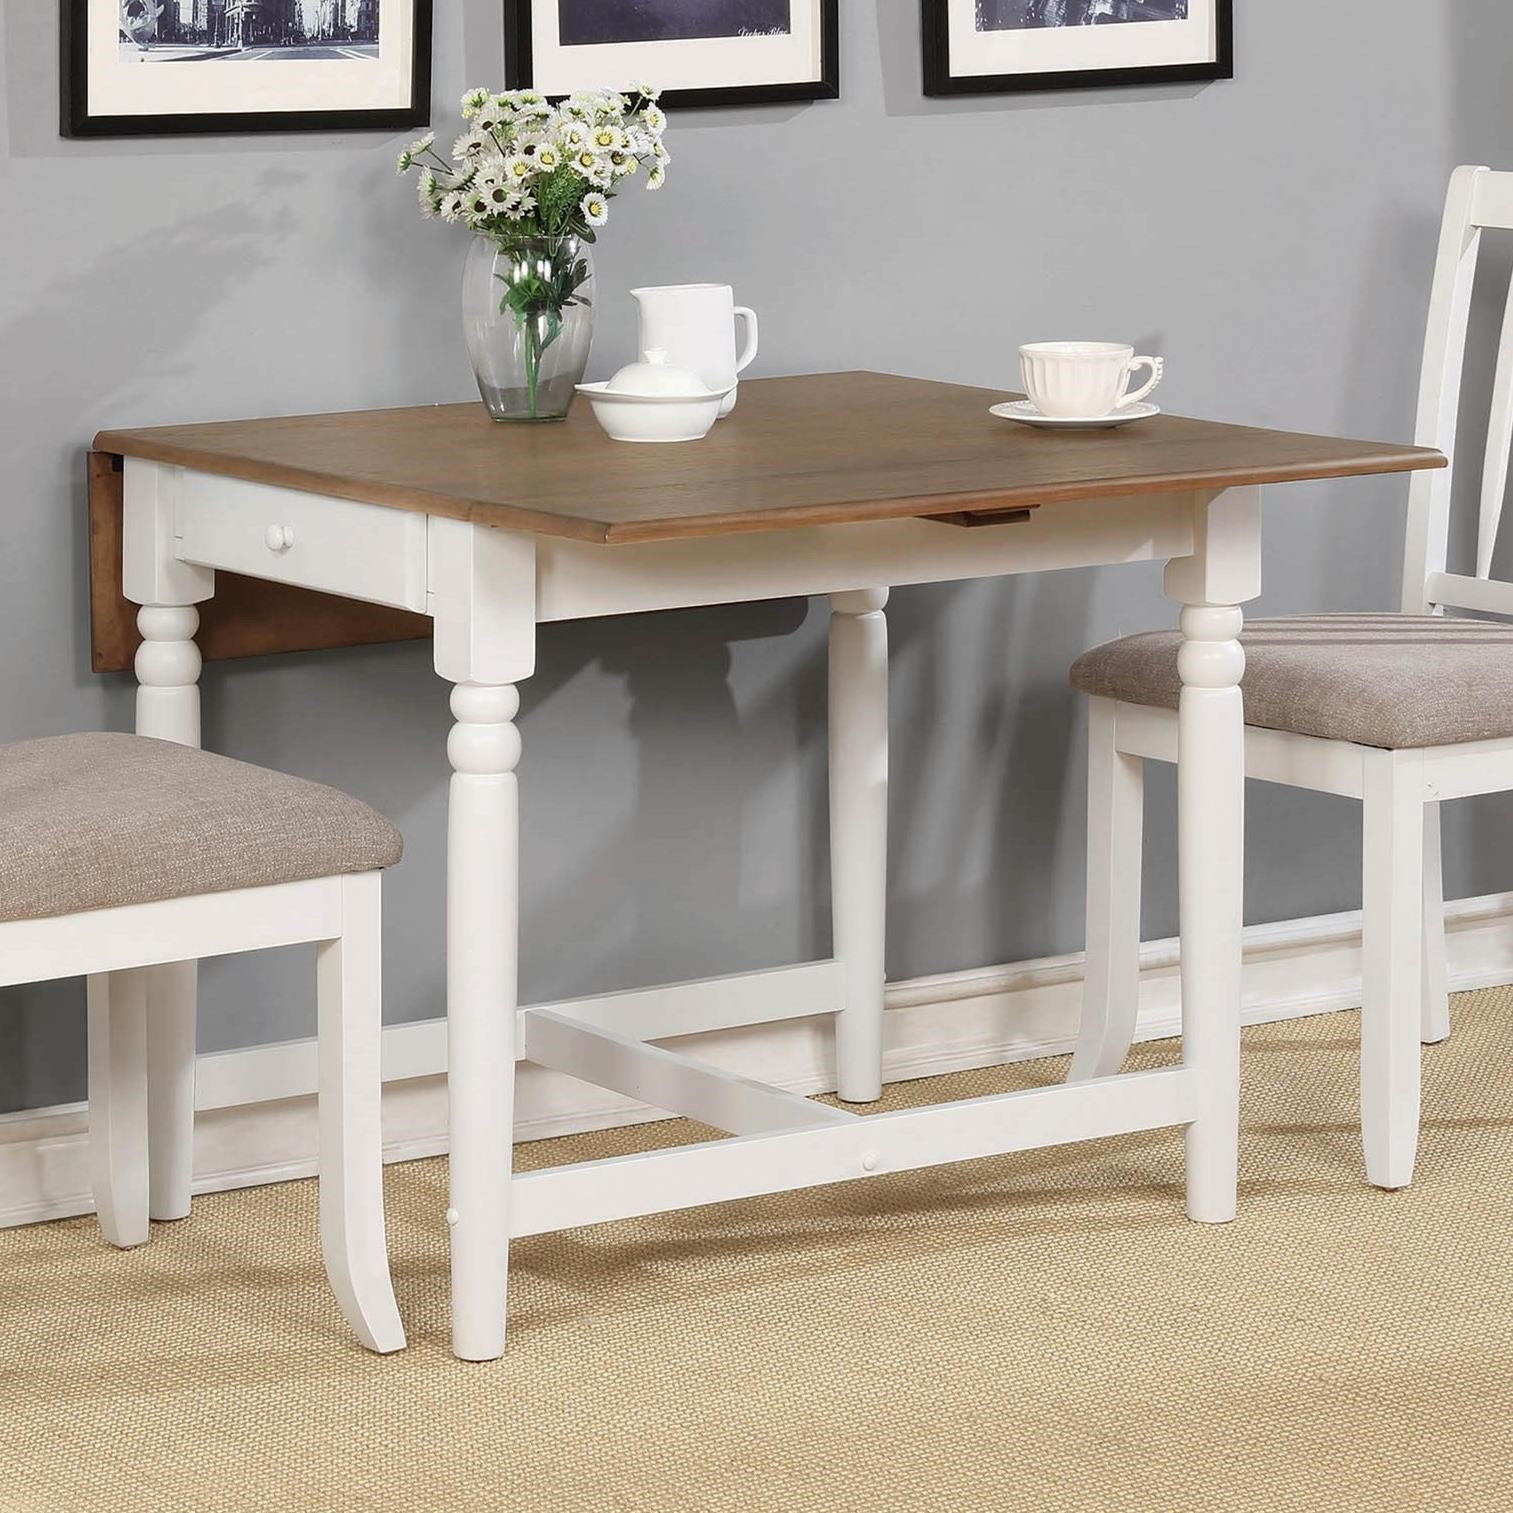 Hesperia Dining Table by Coaster at Northeast Factory Direct